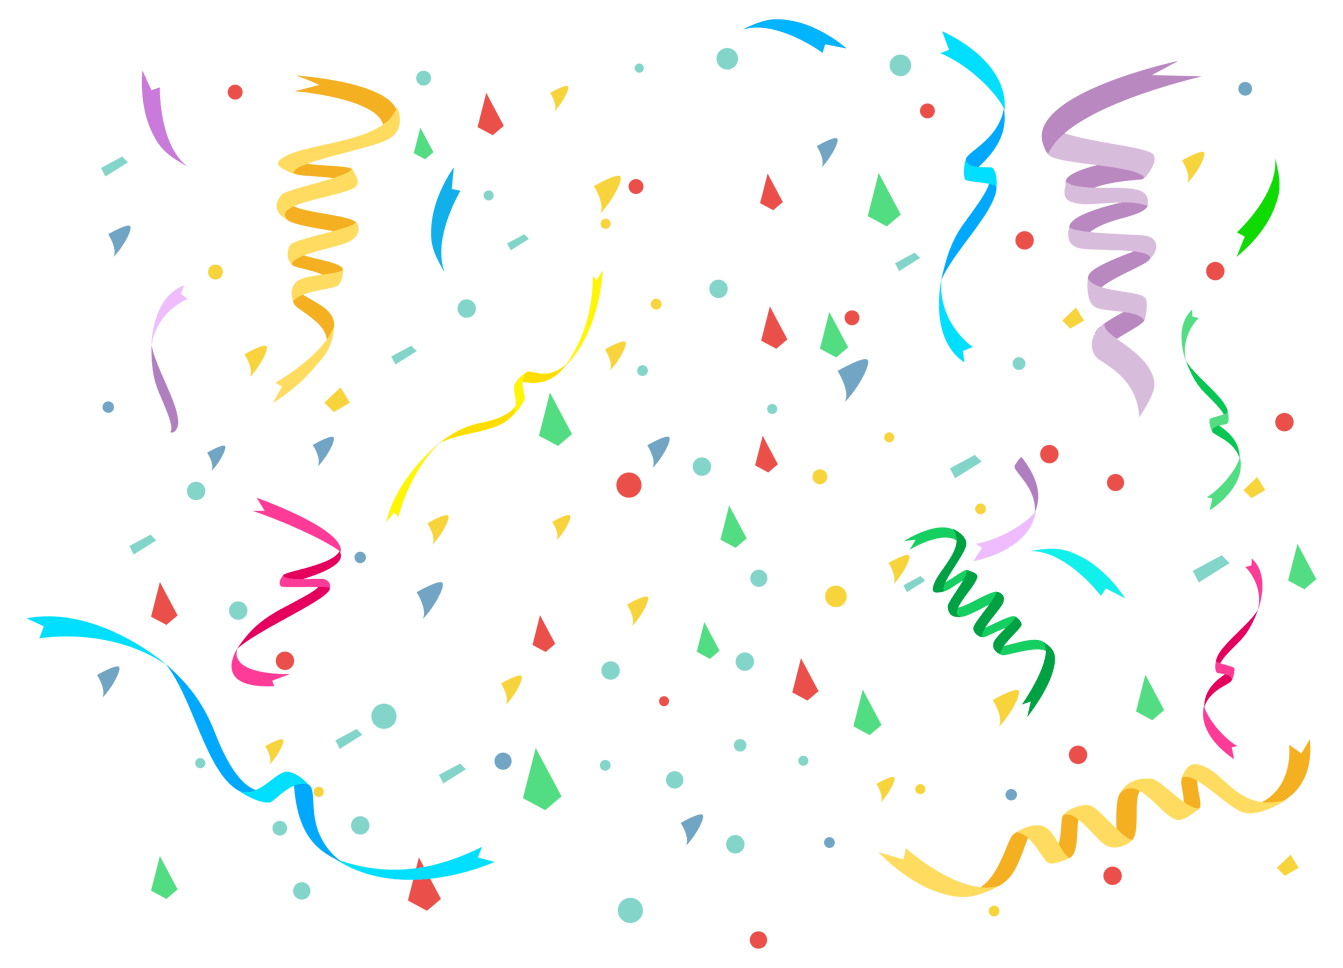 An Image of Confetti by Upleap